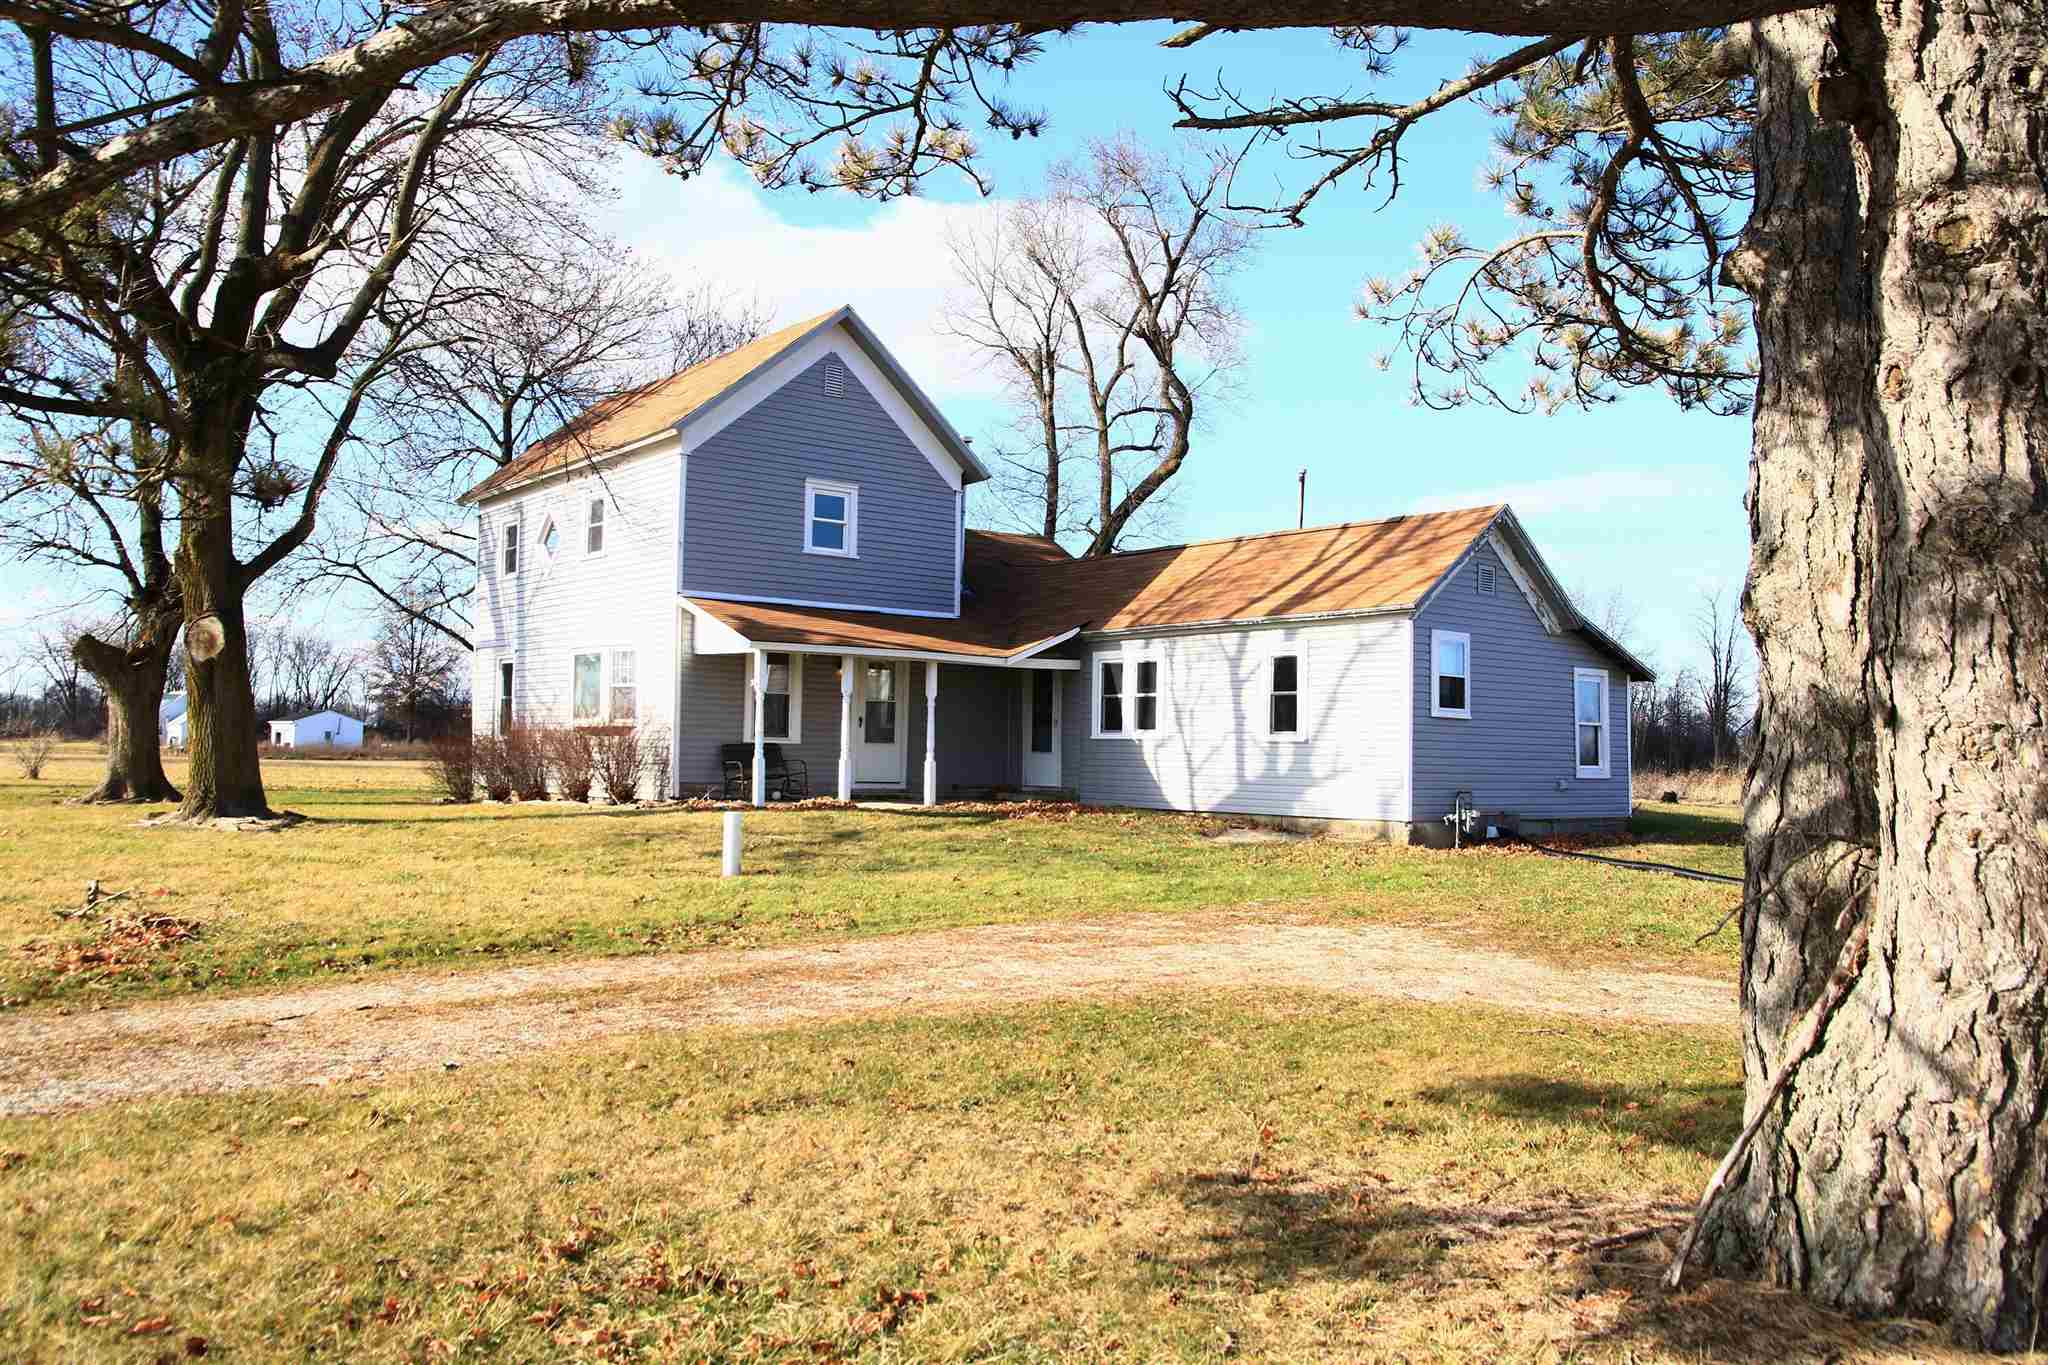 6515 E US 224 Highway, Craigville, IN 46731